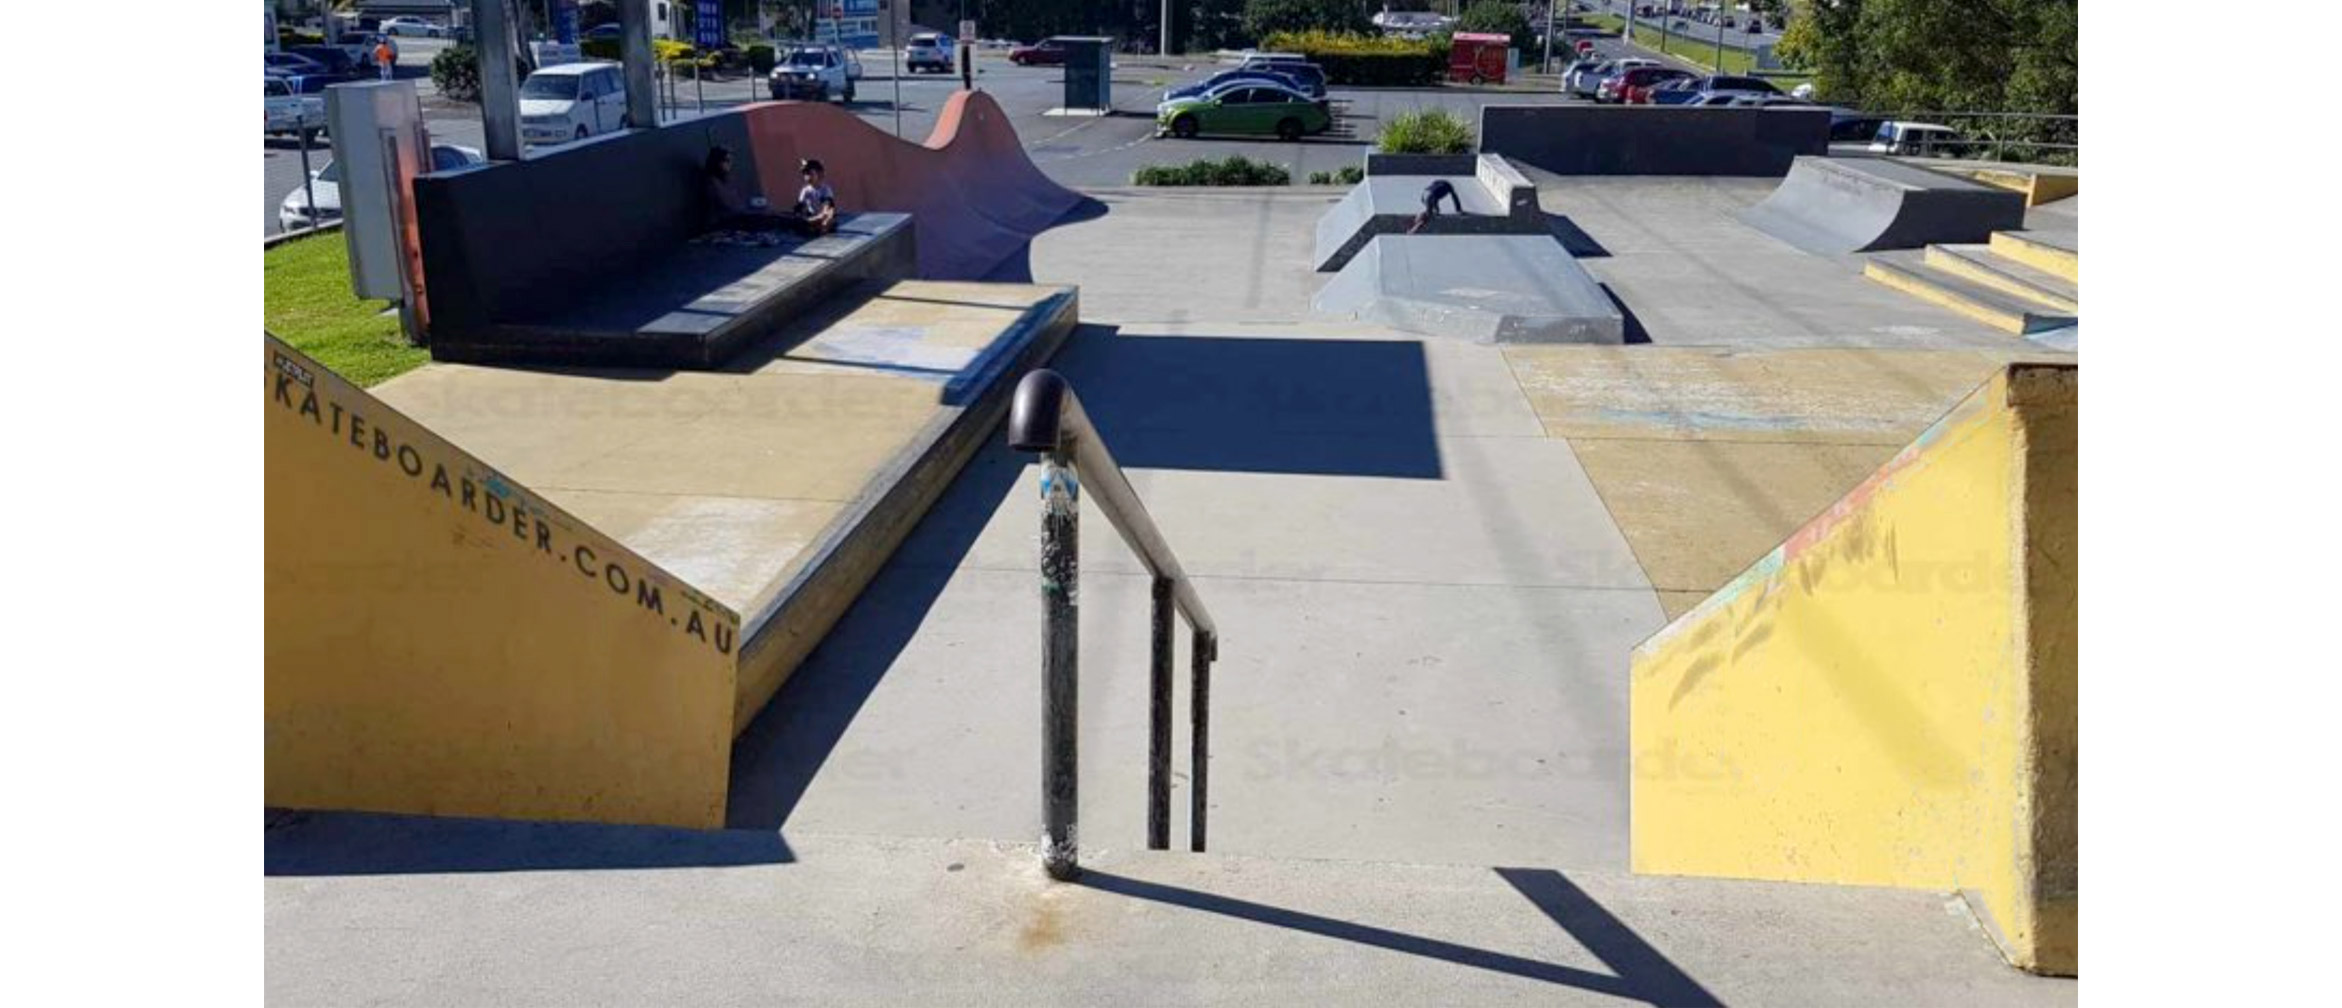 Varsity skate park hybrid section with rails, stairs and transitions